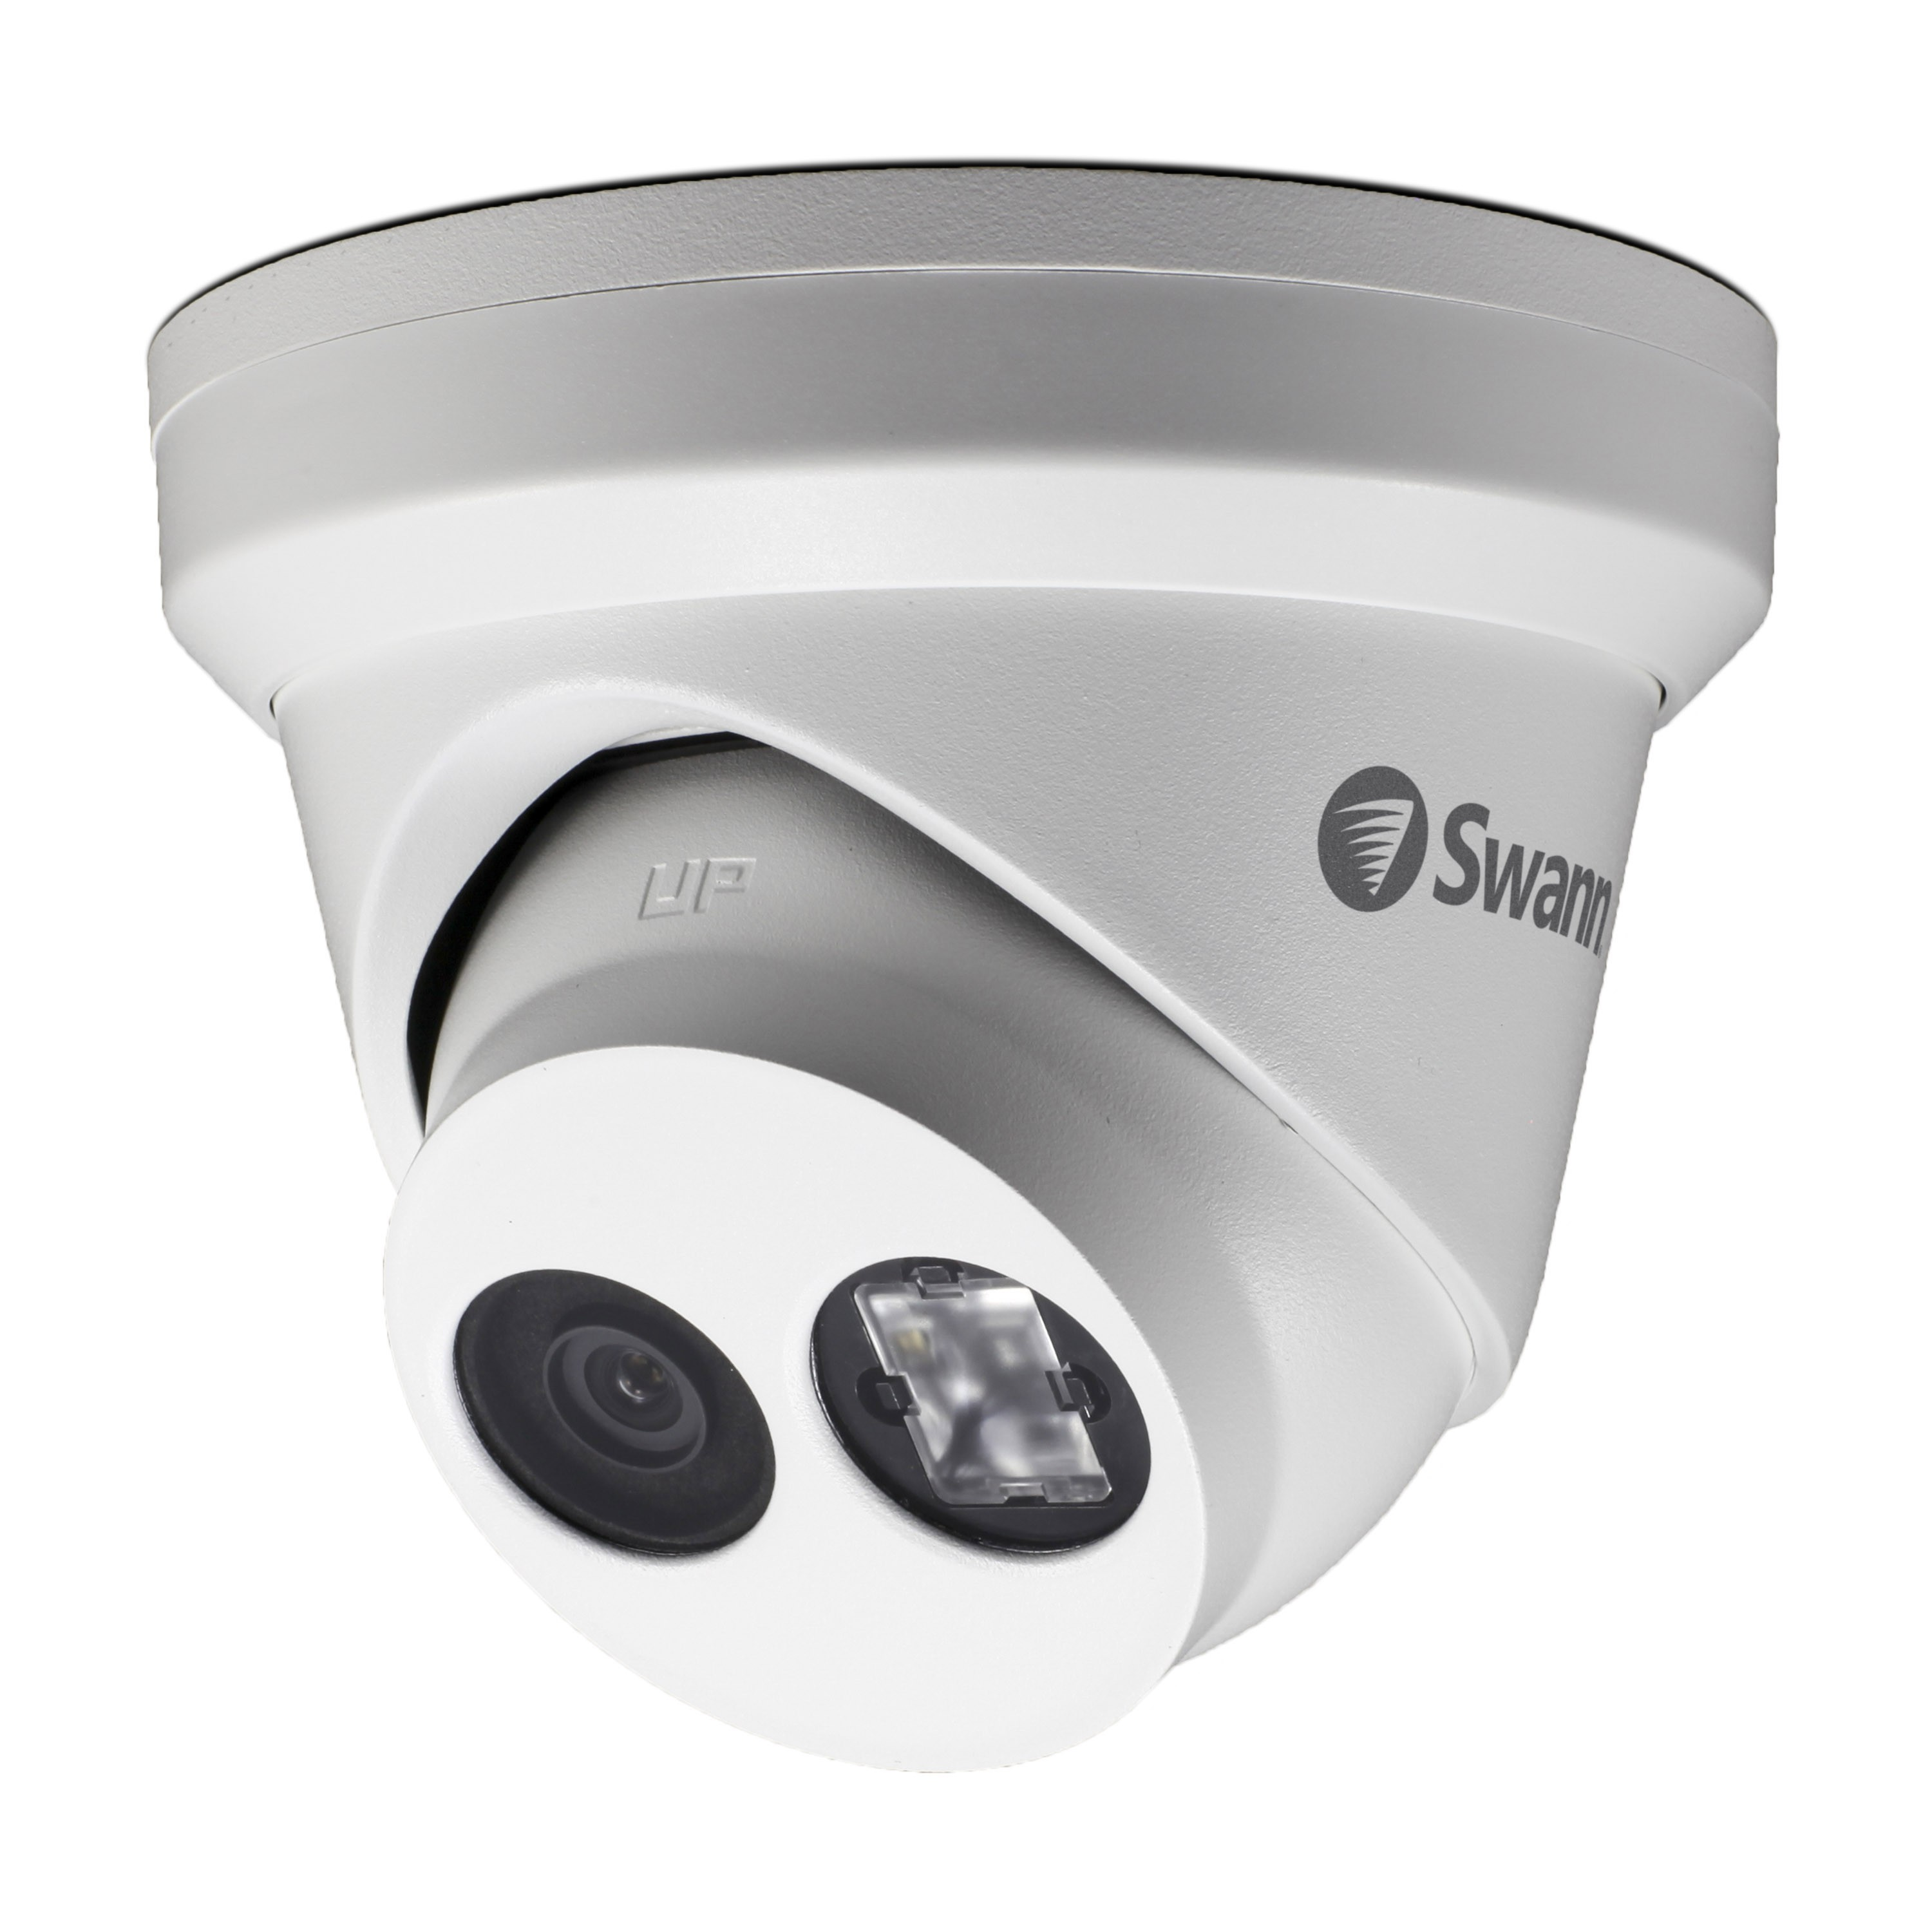 Swann 4k Ultra Hd Dome Outdoor Security Camera With Exir